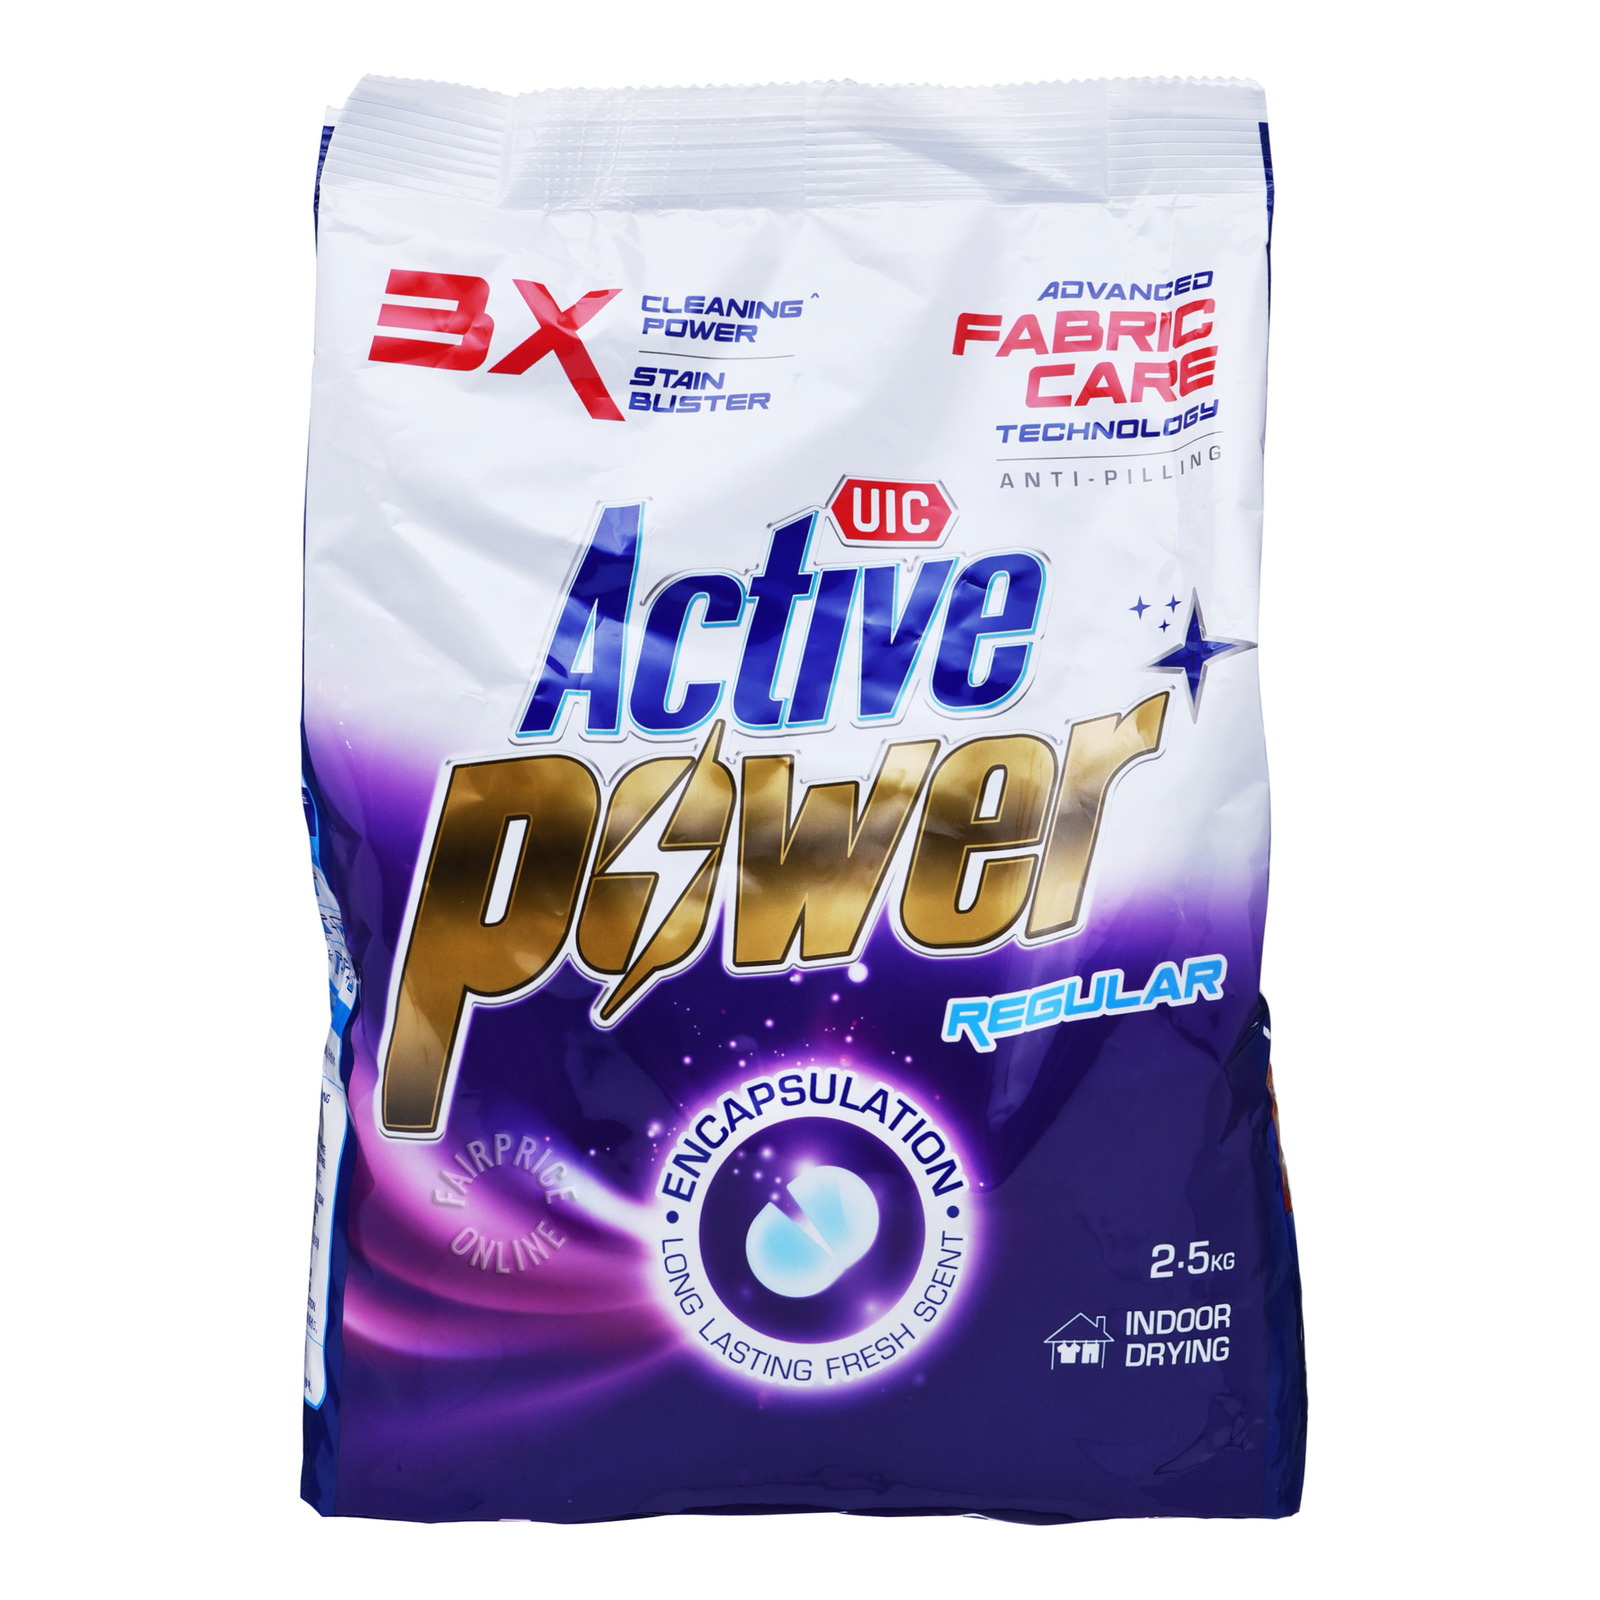 UIC Active Power+ Powder Detergent - Regular